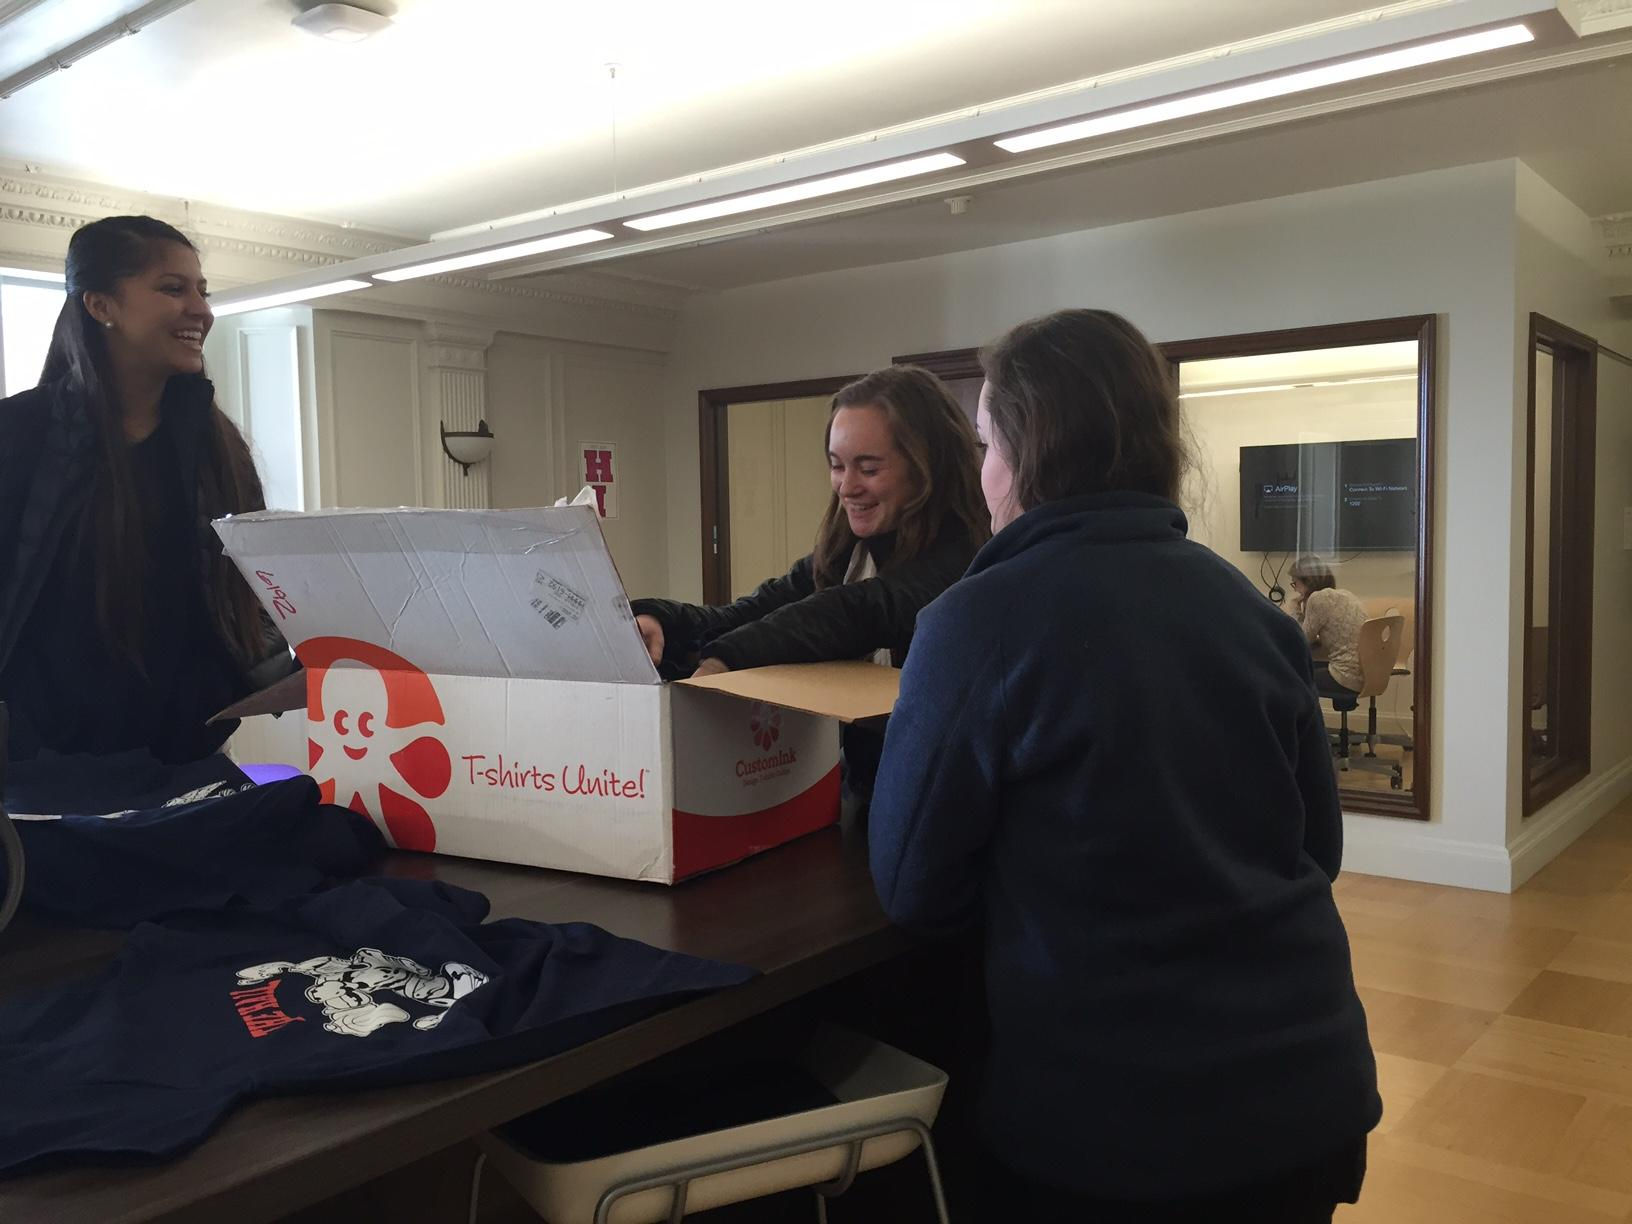 Student Body Publicity Director Victoria Oysterman and Student Body Secretary Nora Hanak sell a shirt to senior Sarah McCarthy. The shirts raise awareness for the upcoming Stuart Hall High School varsity basketball game tomorrow night.